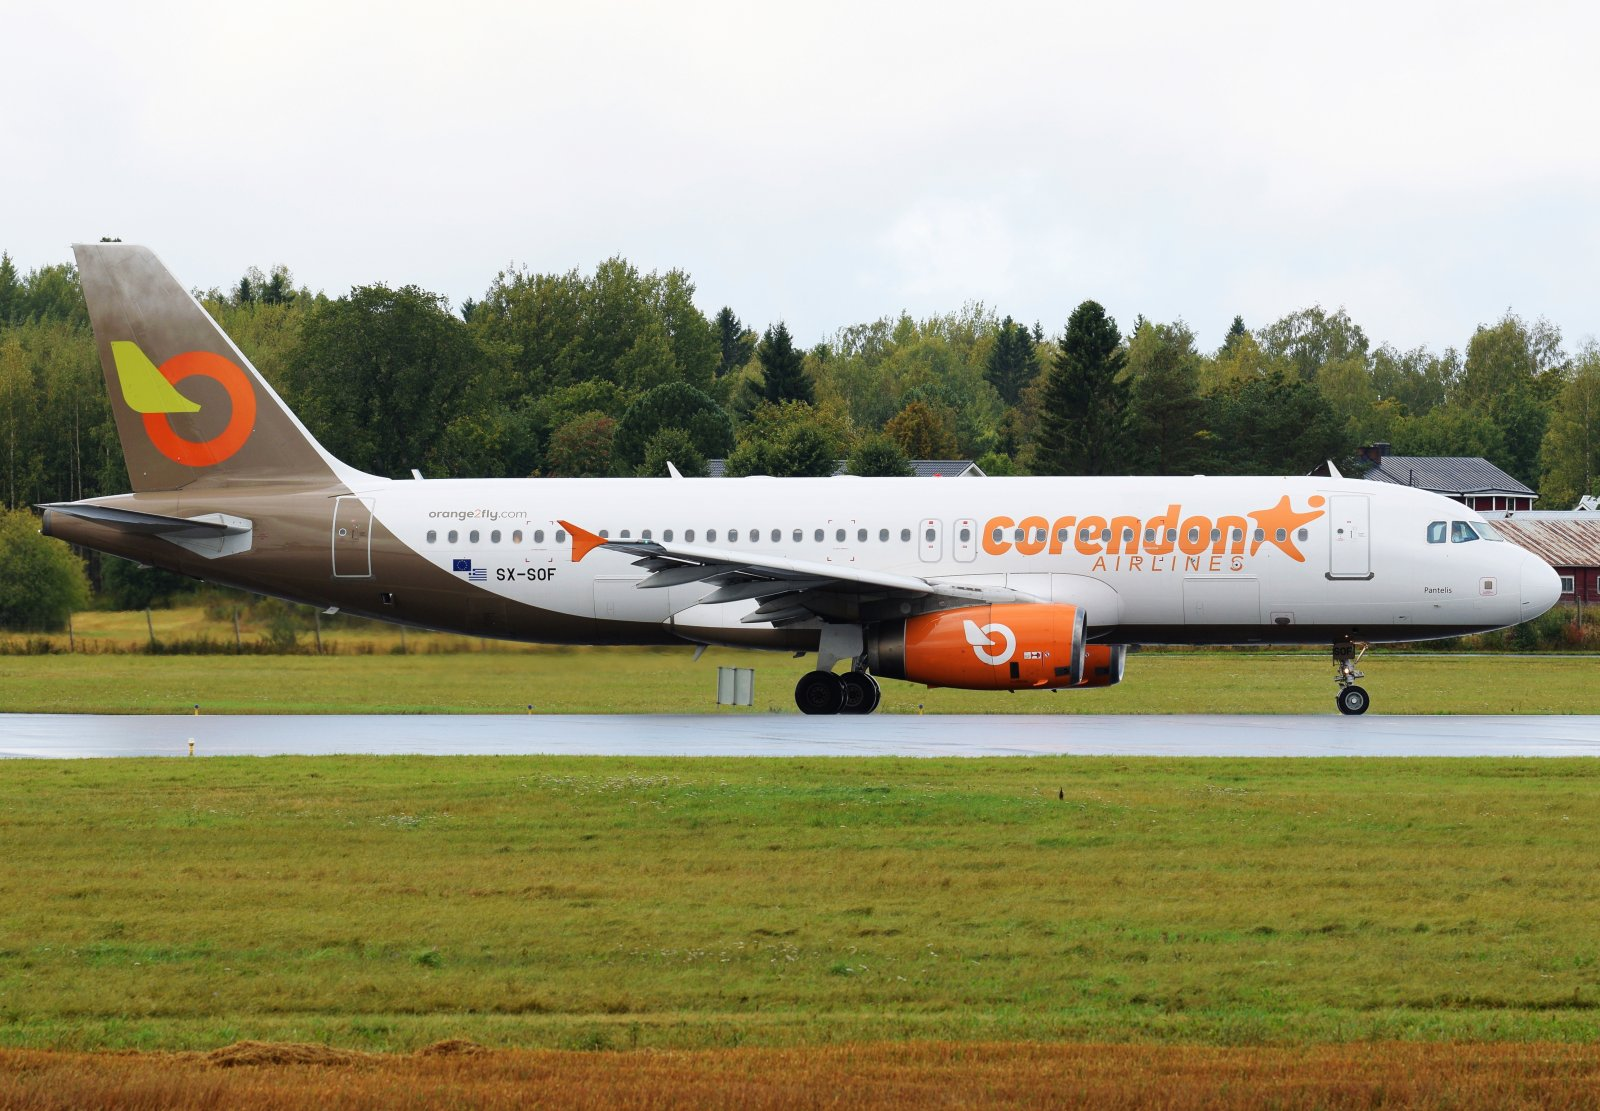 SX-SOF - Airbus A320-232 - Orange2Fly (Corendon Airlines) - 12.9.2019